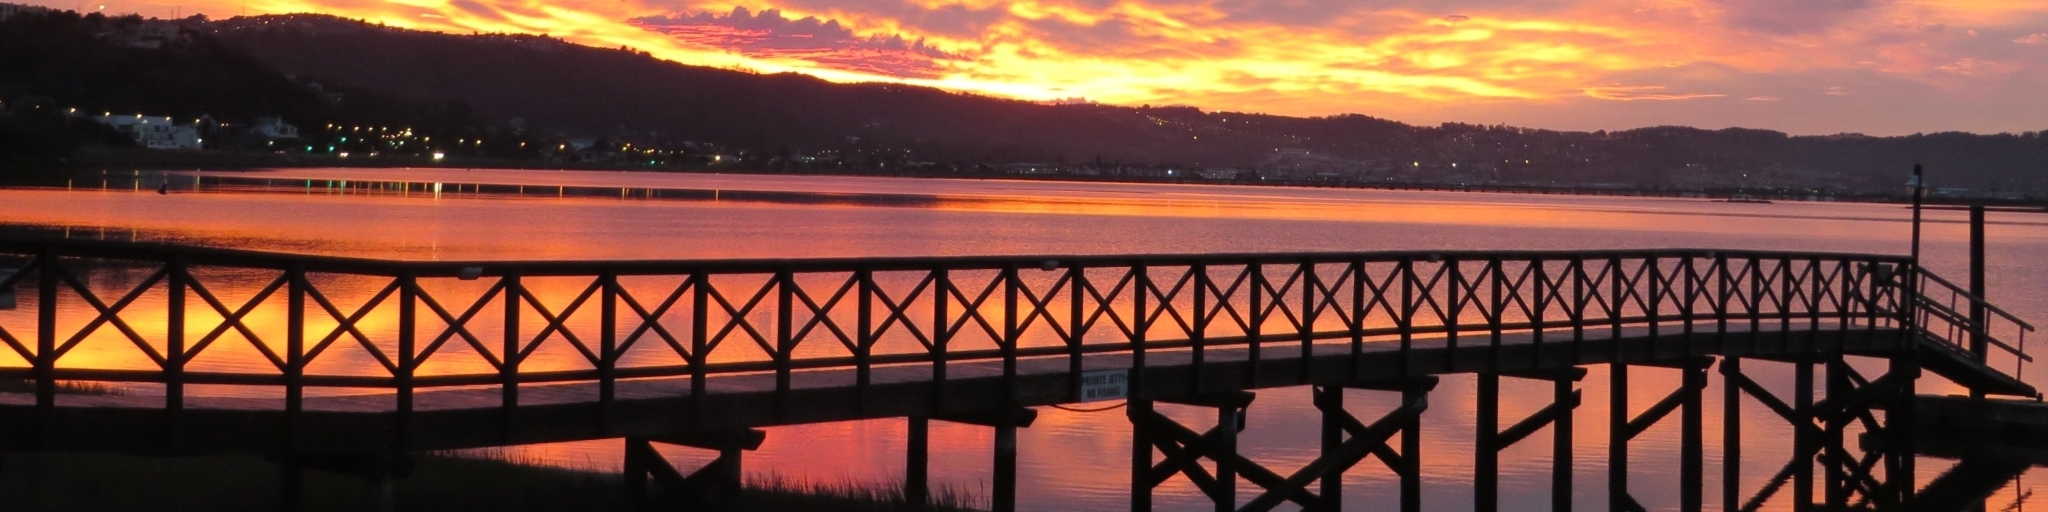 The Elephant Hide, Knysna